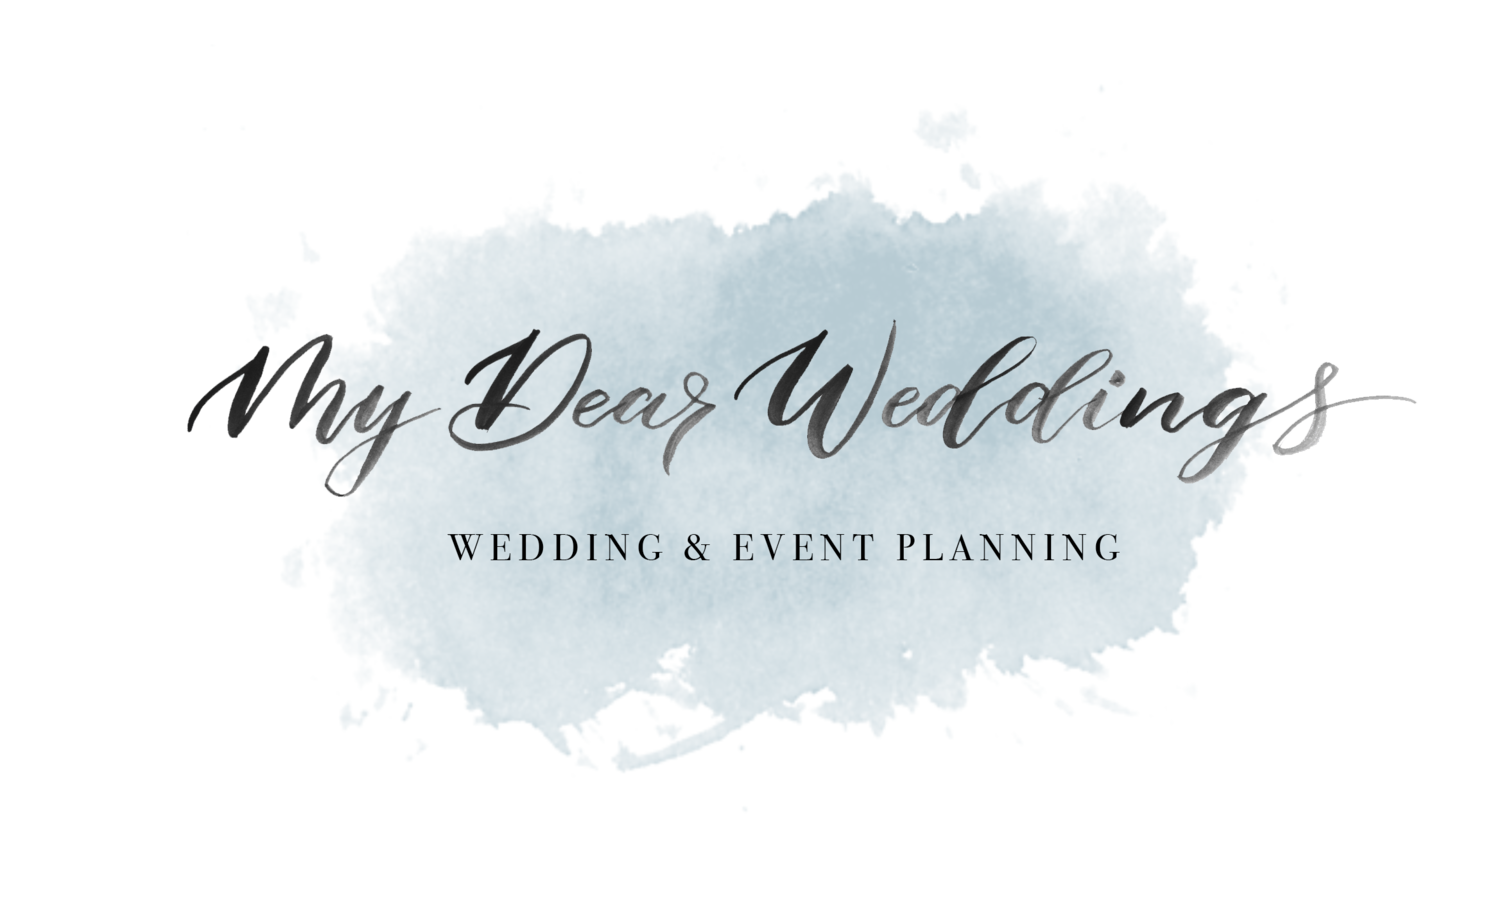 My Dear Weddings